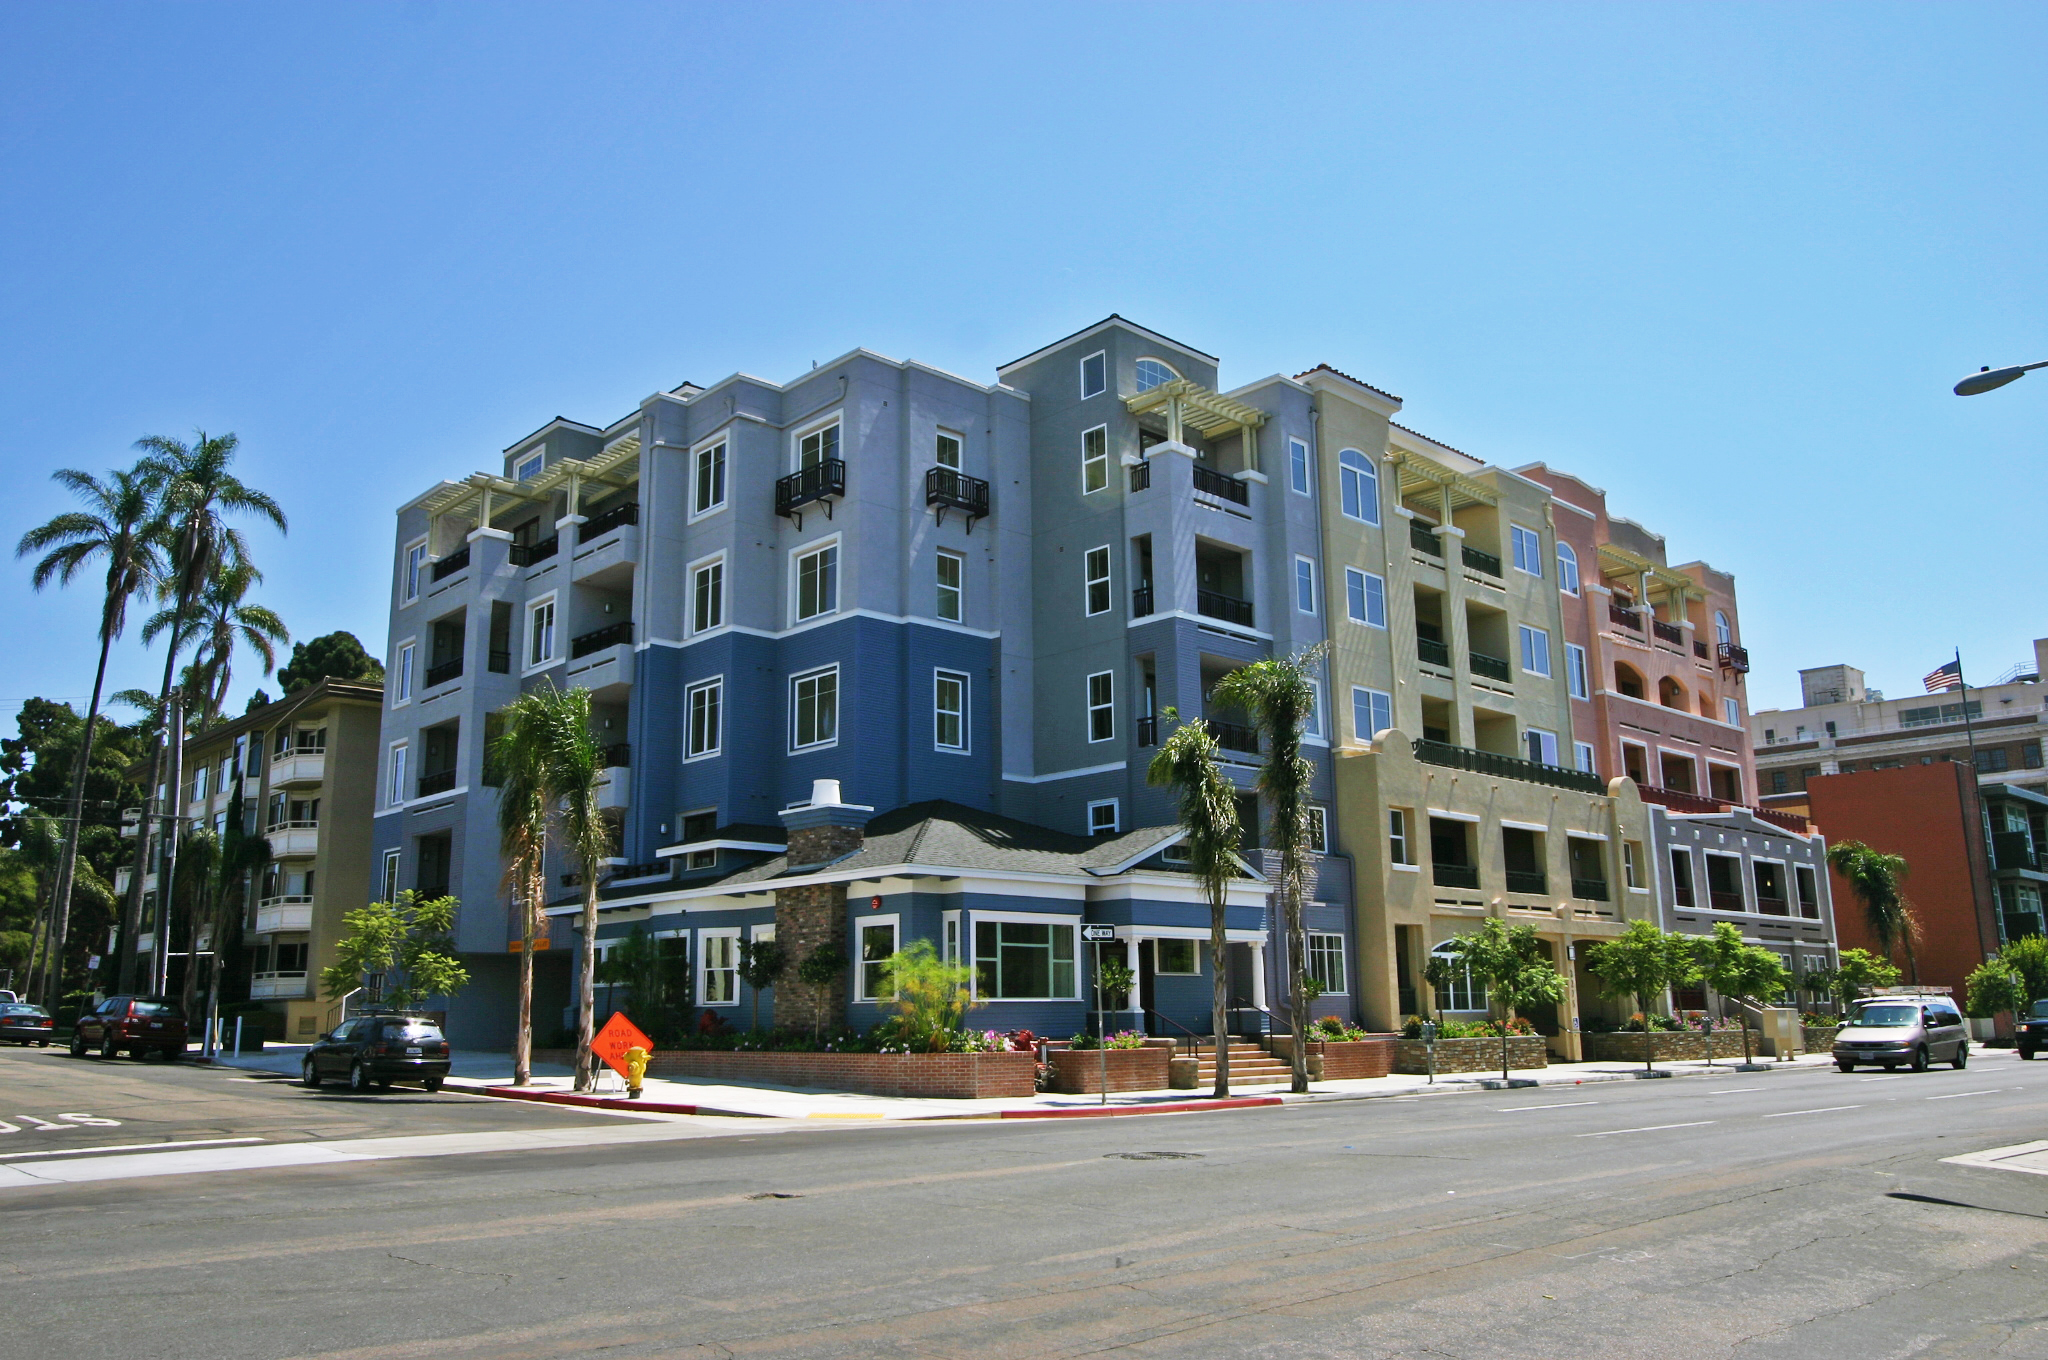 Bankers hill apartment complex sold for 14 5m san diego - Apartment complexes san diego ...